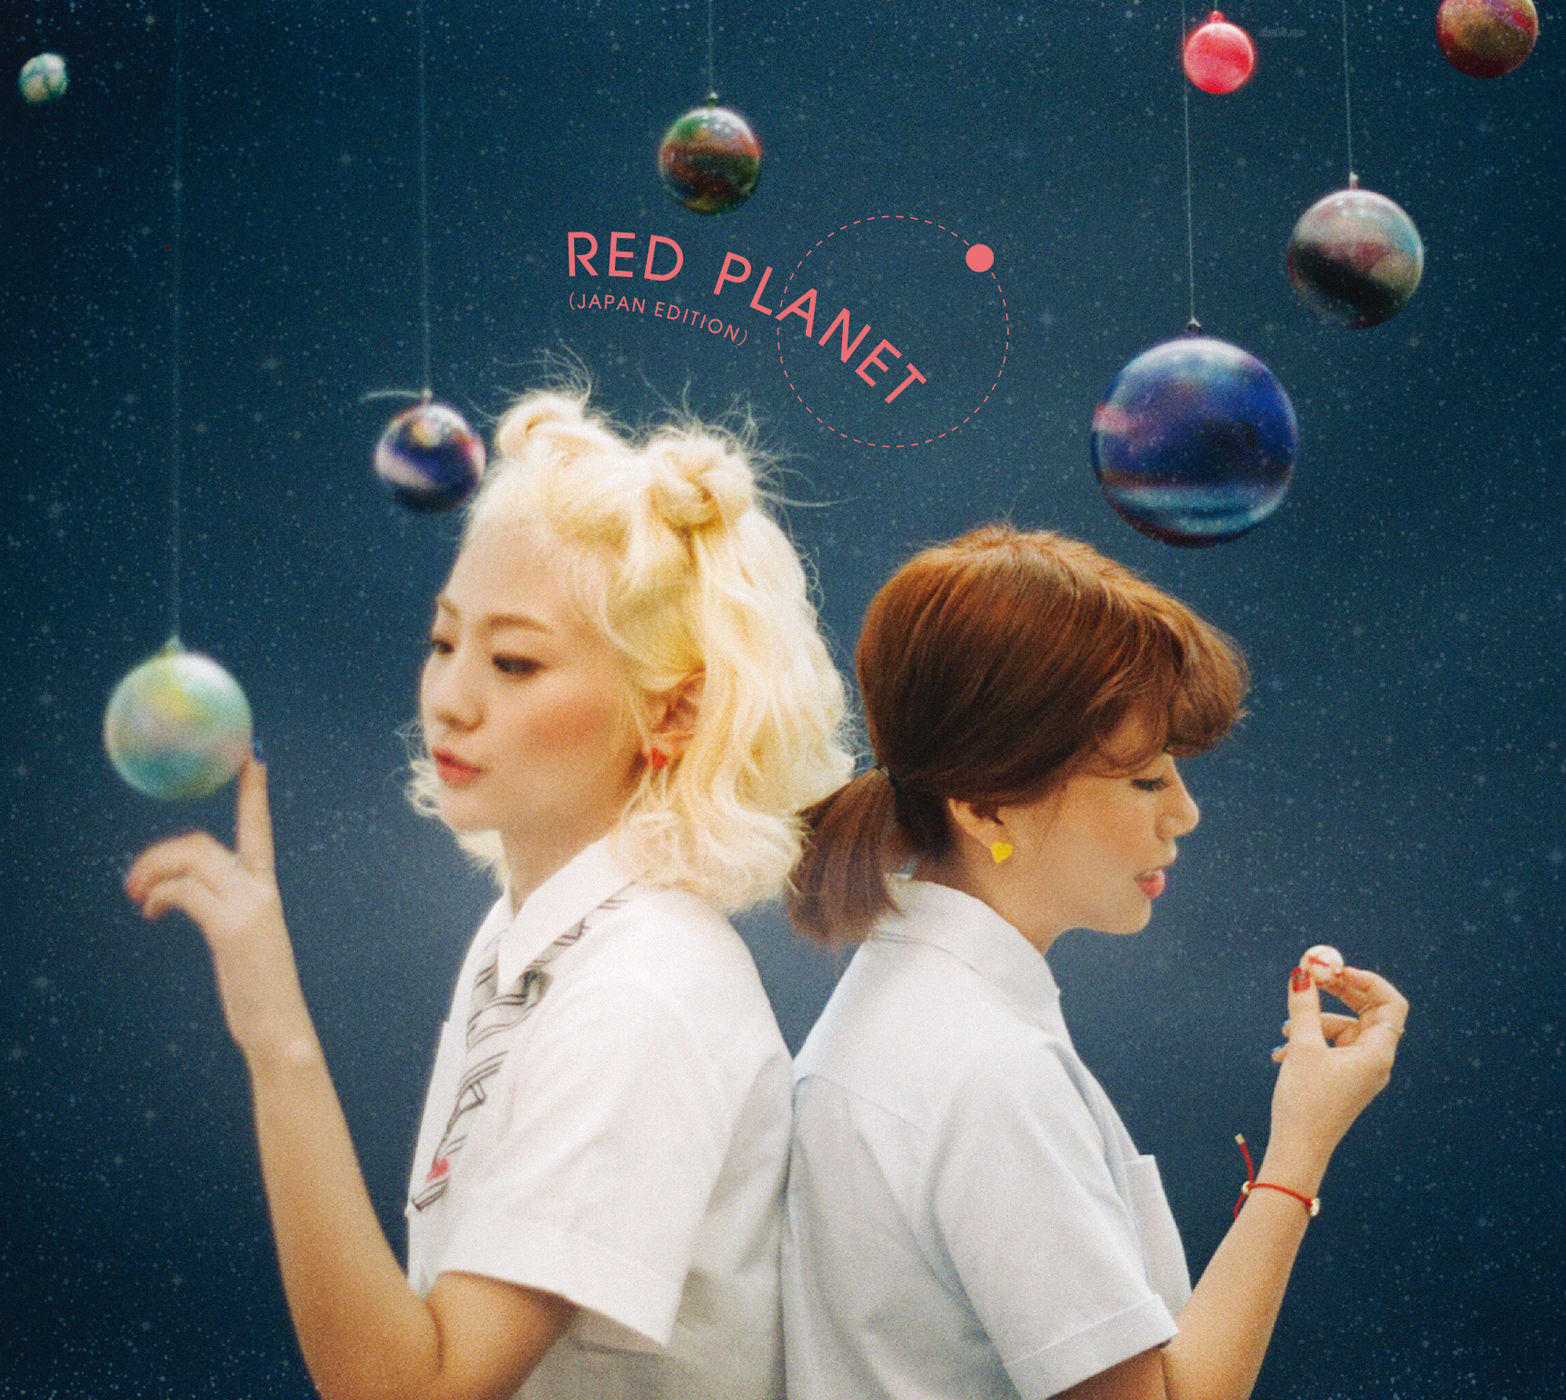 Bolbbalgan4 – RED PLANET (JAPAN EDITION) – EP (FLAC + ITUNES PLUS AAC M4A)